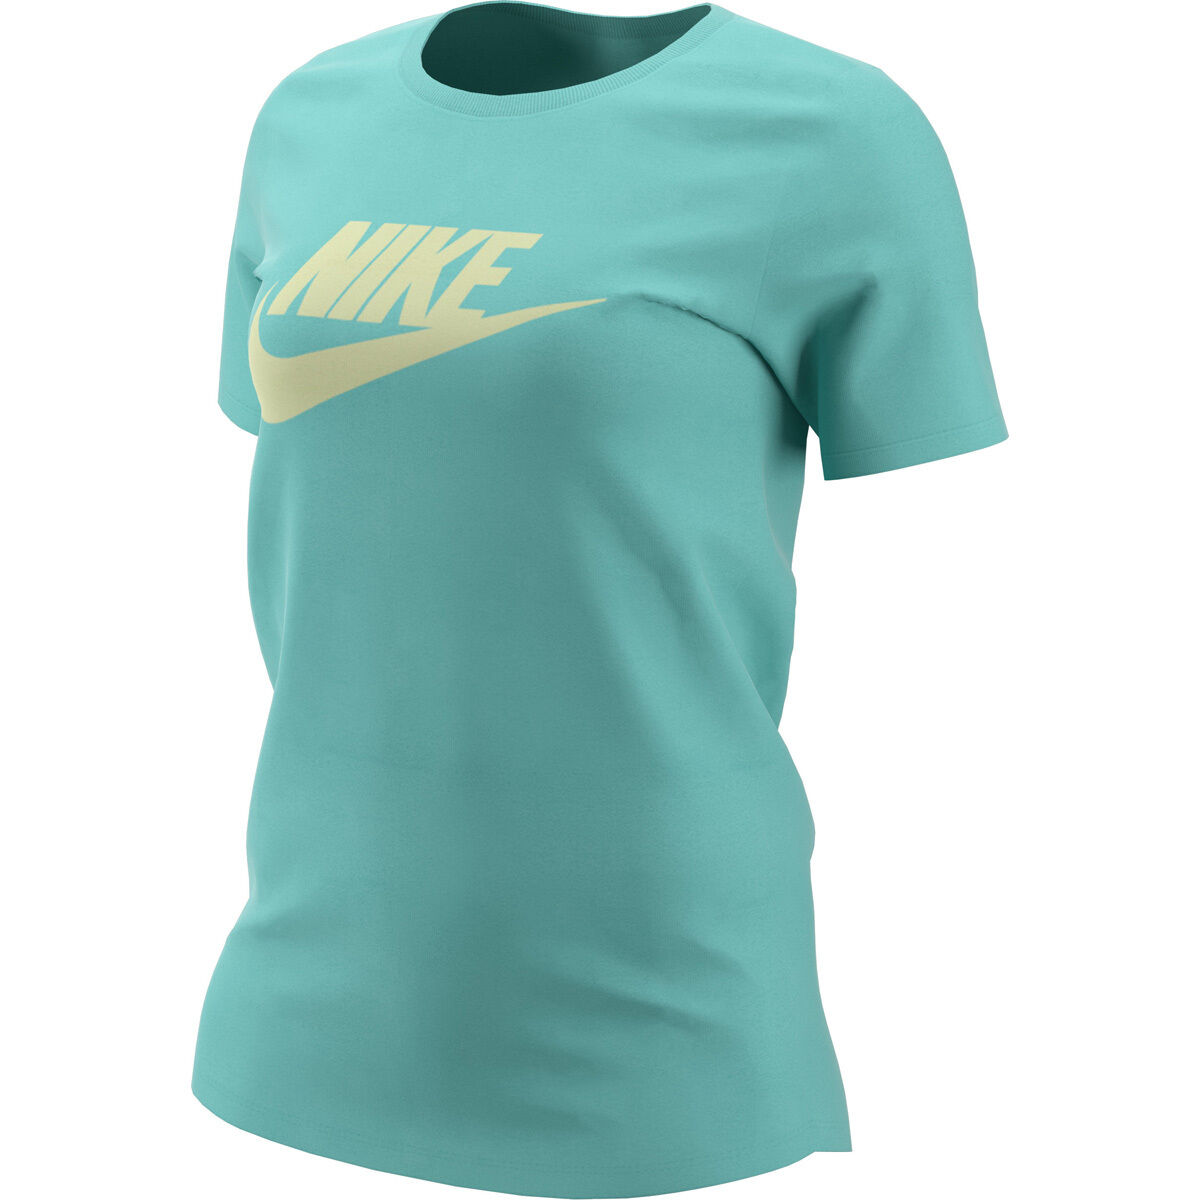 Nike Herren Dri fit T shirt Victory Ii from Karstadt on 21 Buttons